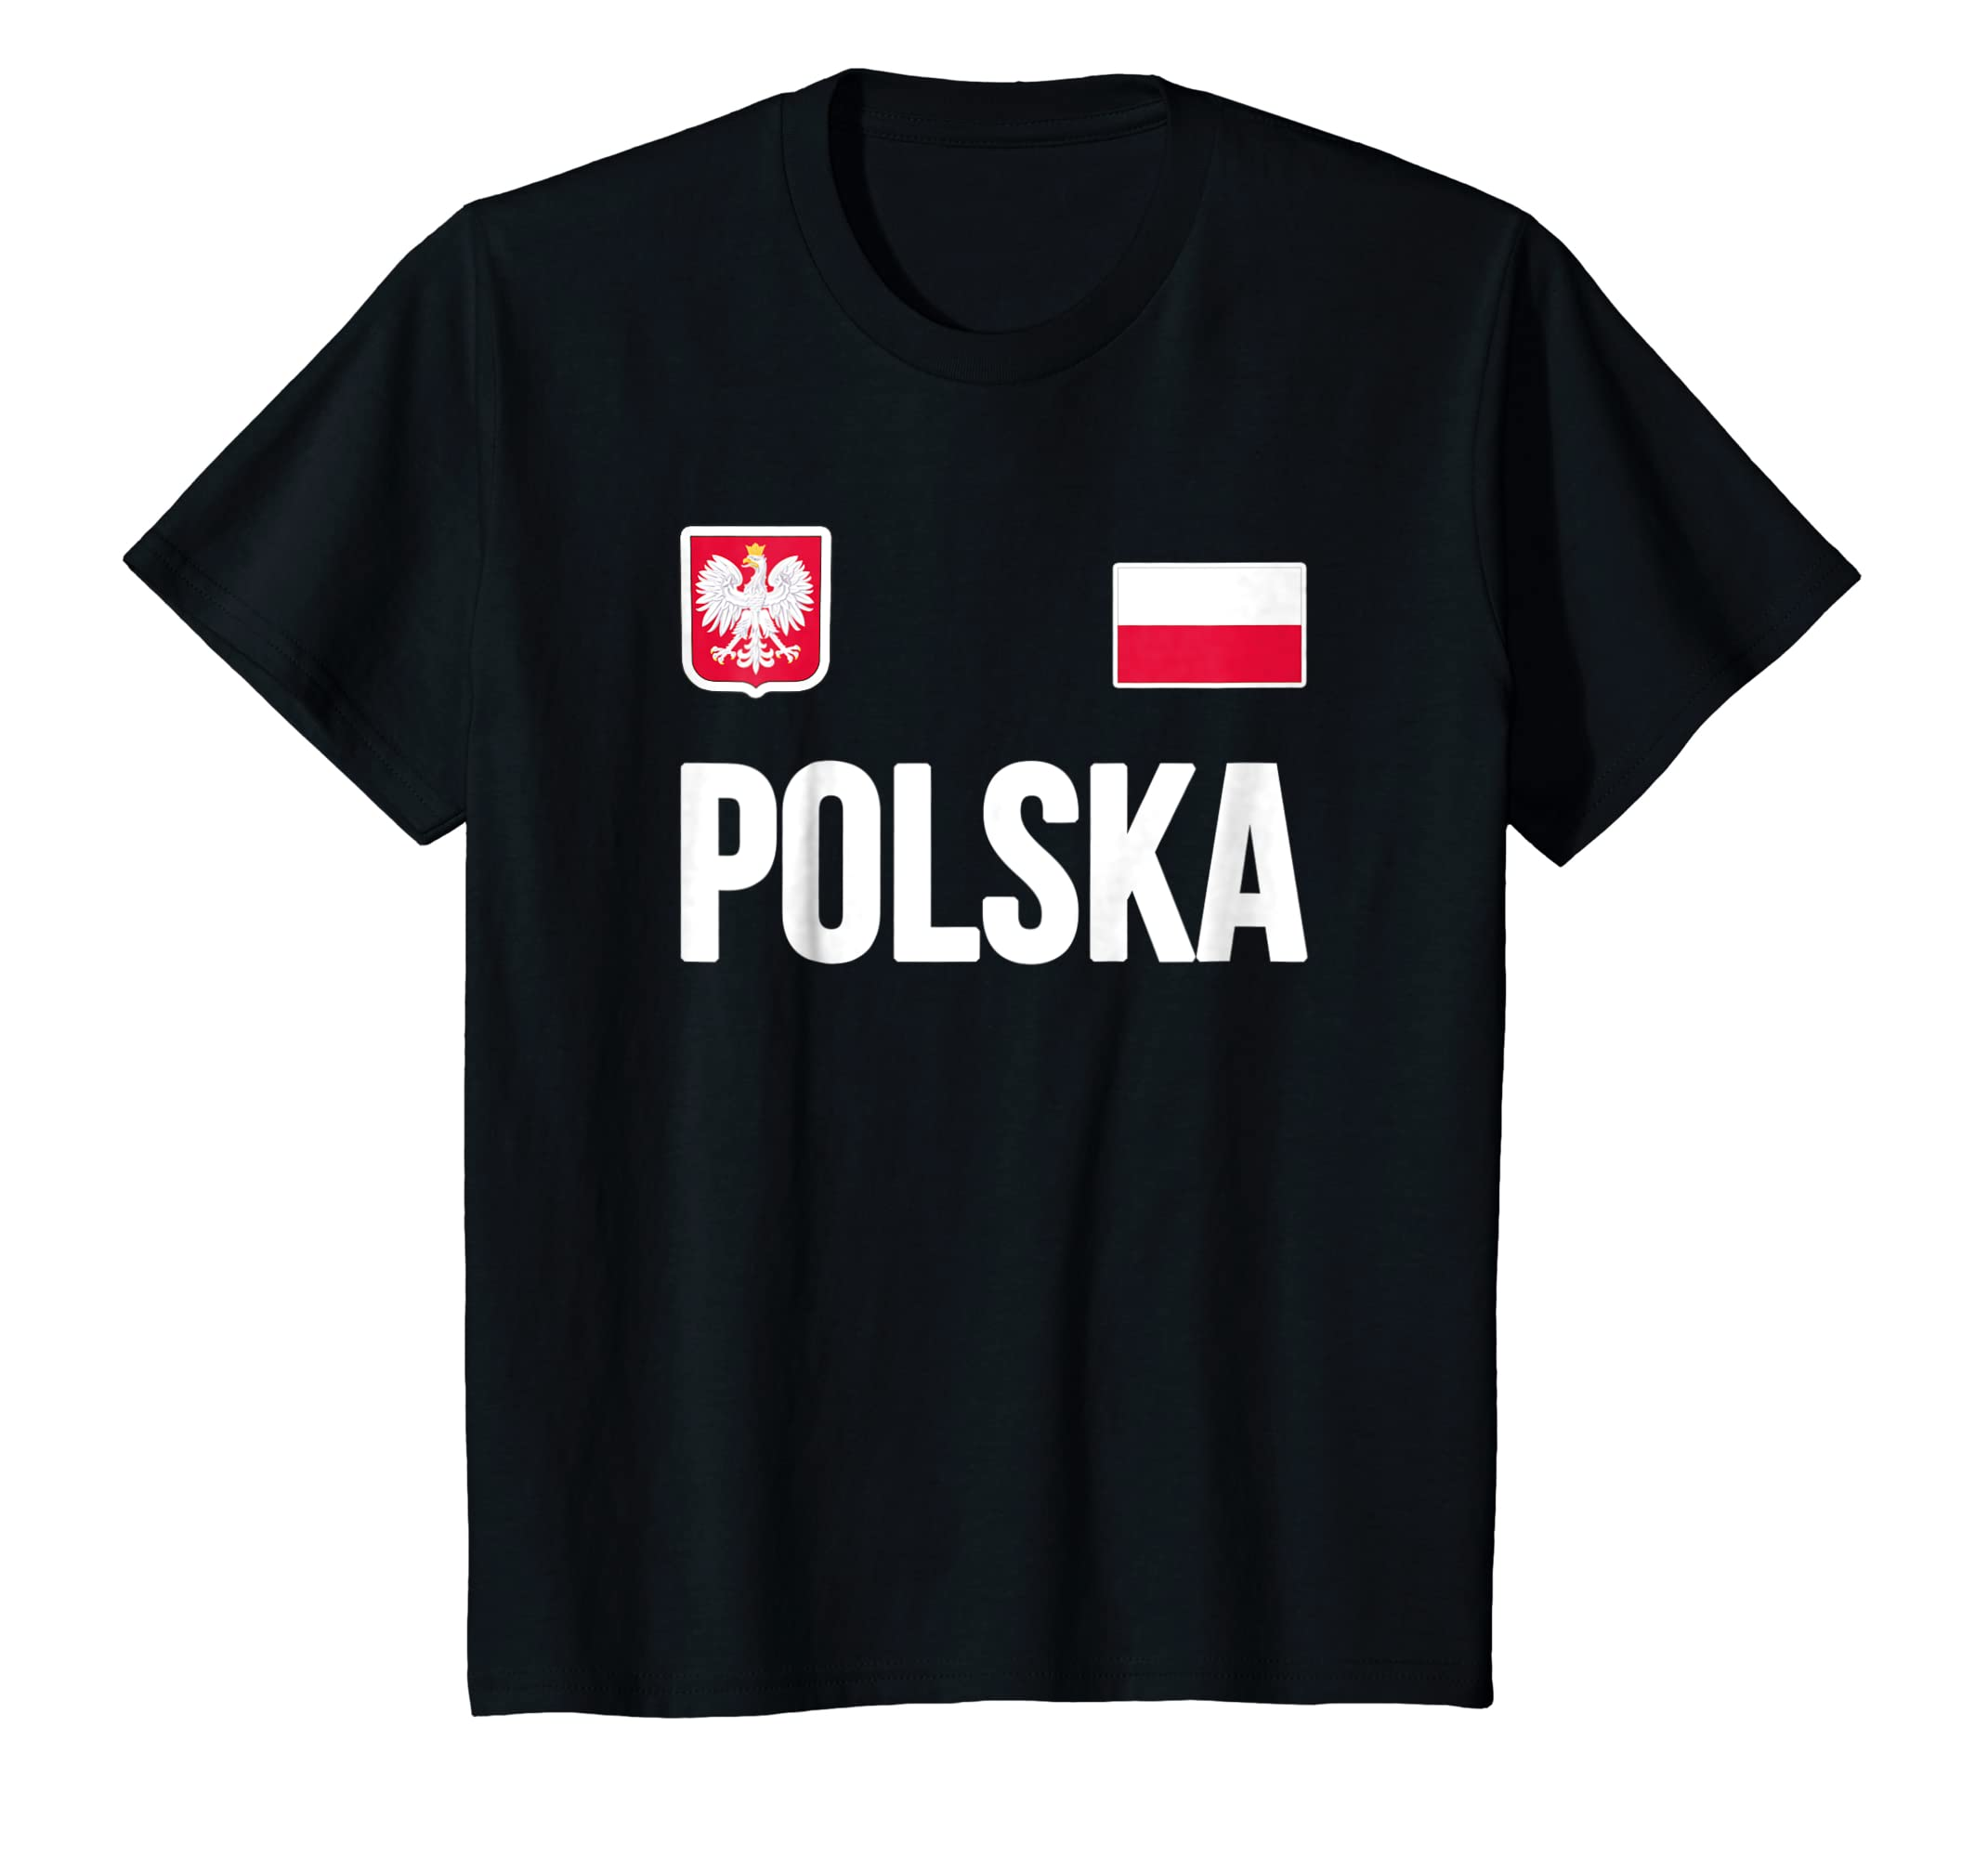 2306506f6af Amazon.com  Poland T-shirt Polska Polish Flag Soccer Football Fan Jersey   Clothing